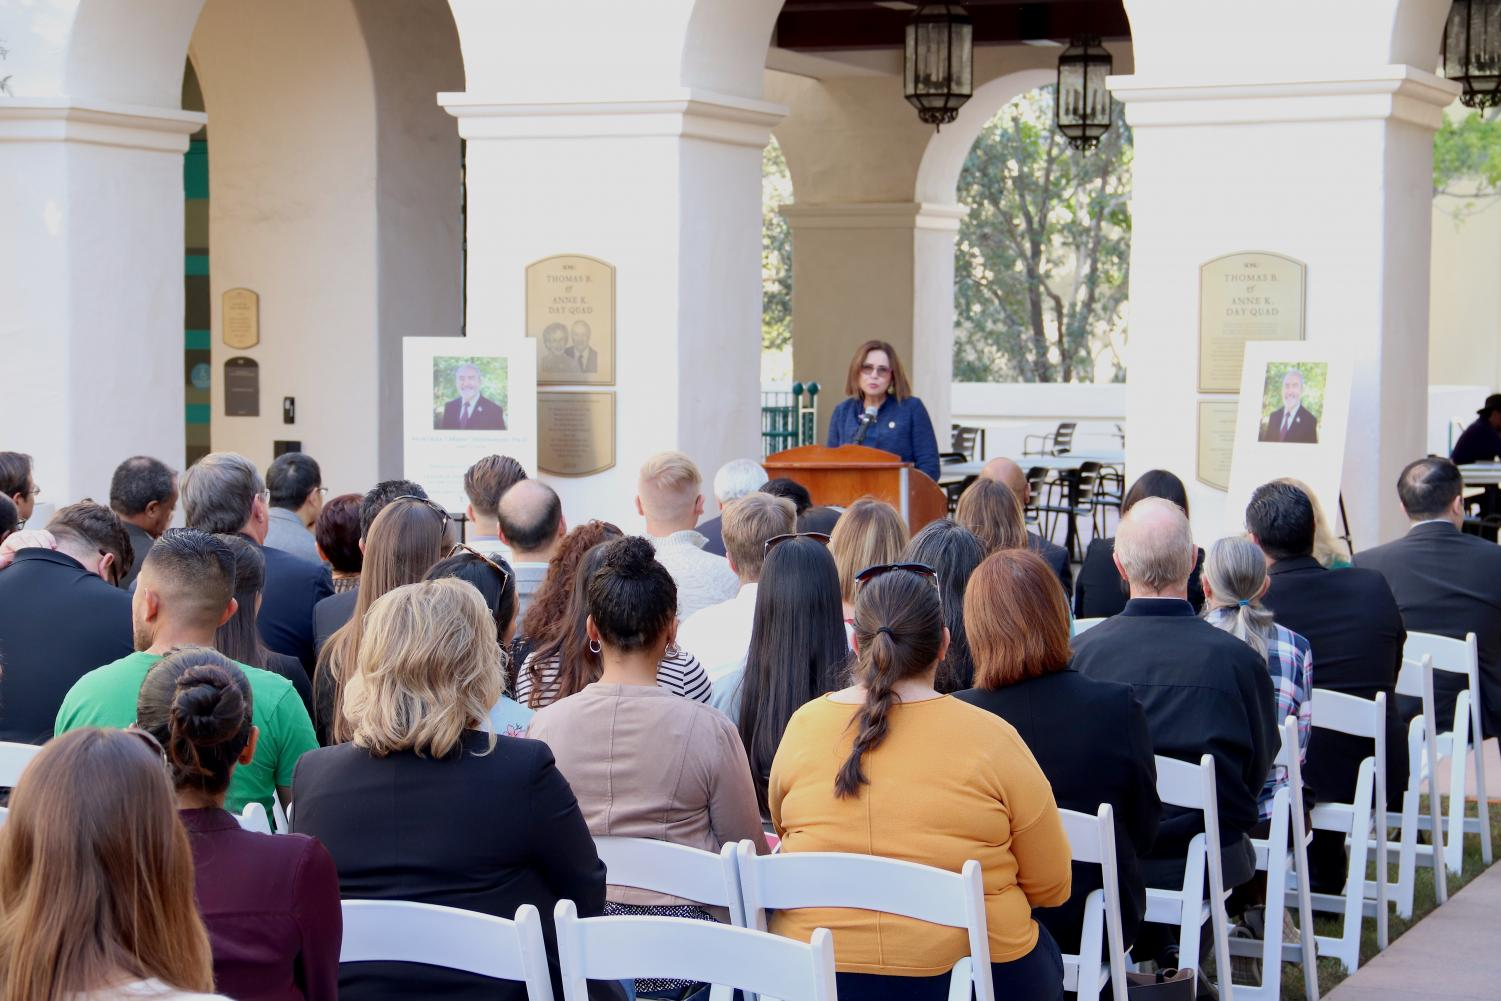 President Adela de la Torre addresses audience at Morteza Mehrabadi's naming event on Friday, Jan. 25 in the engineering building quad.